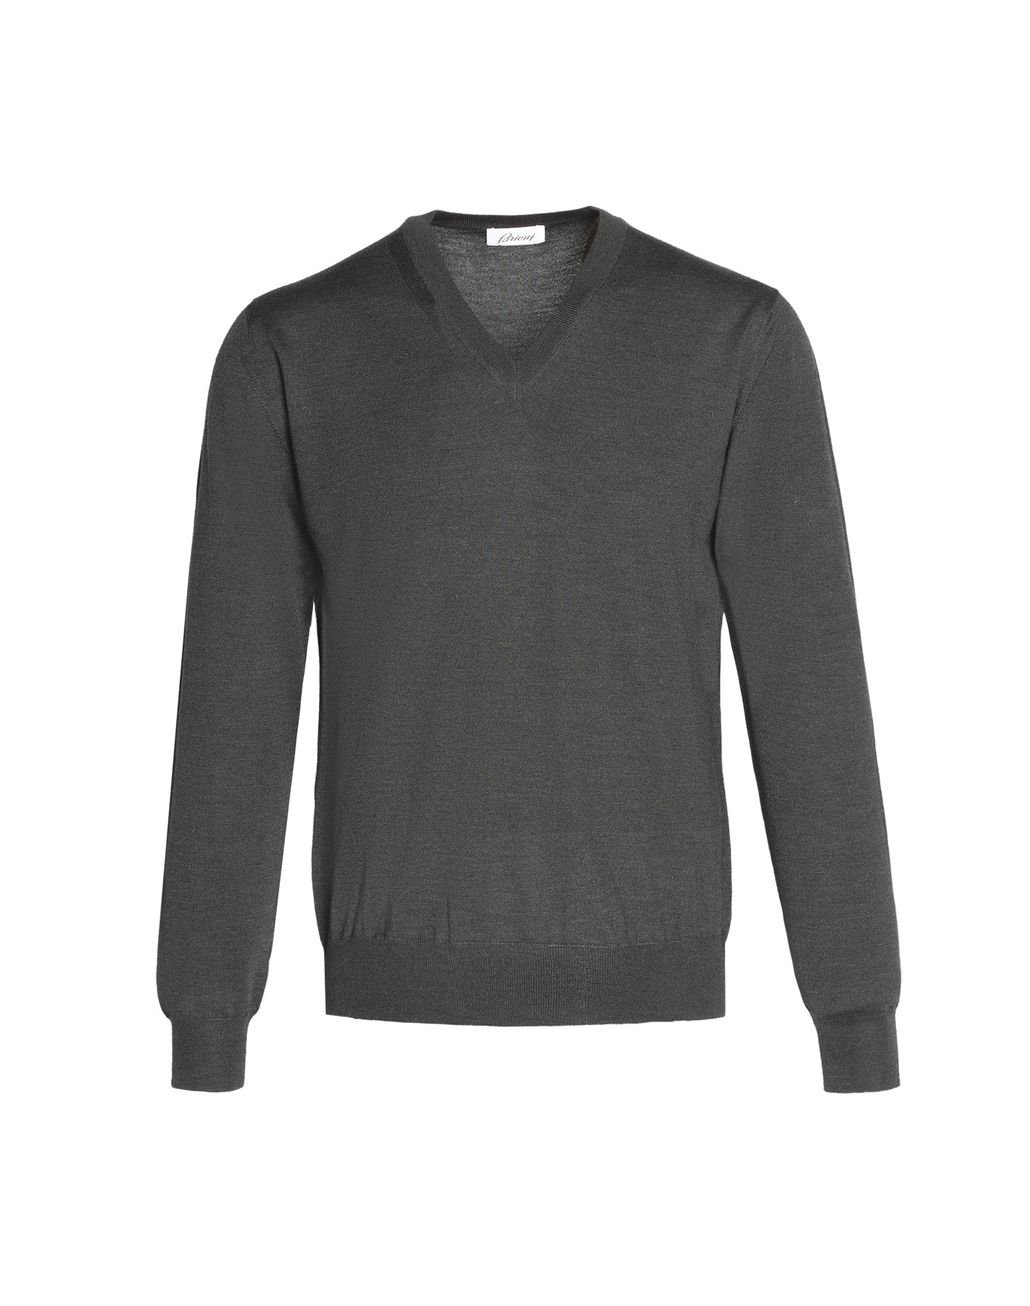 BRIONI Anthracite Gray V-Neck Sweater Knitwear Man f